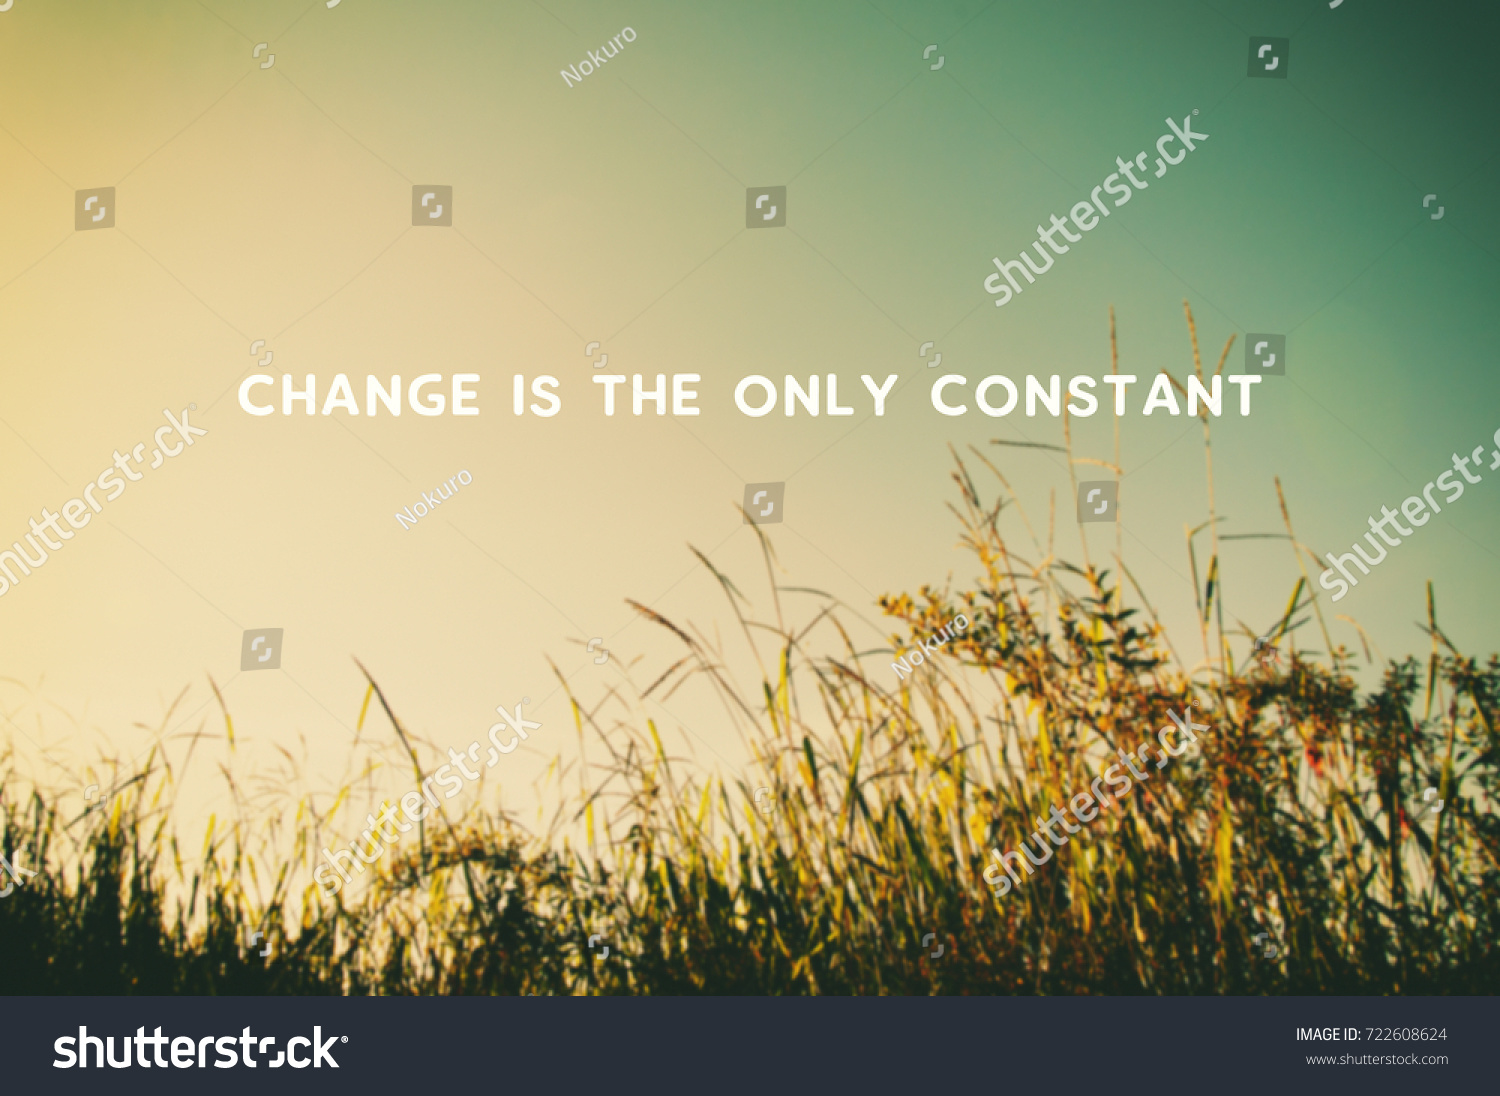 Life Changes Quotes Inspirational Life Motivational Inspirational Quotes Changes Only Stock Photo